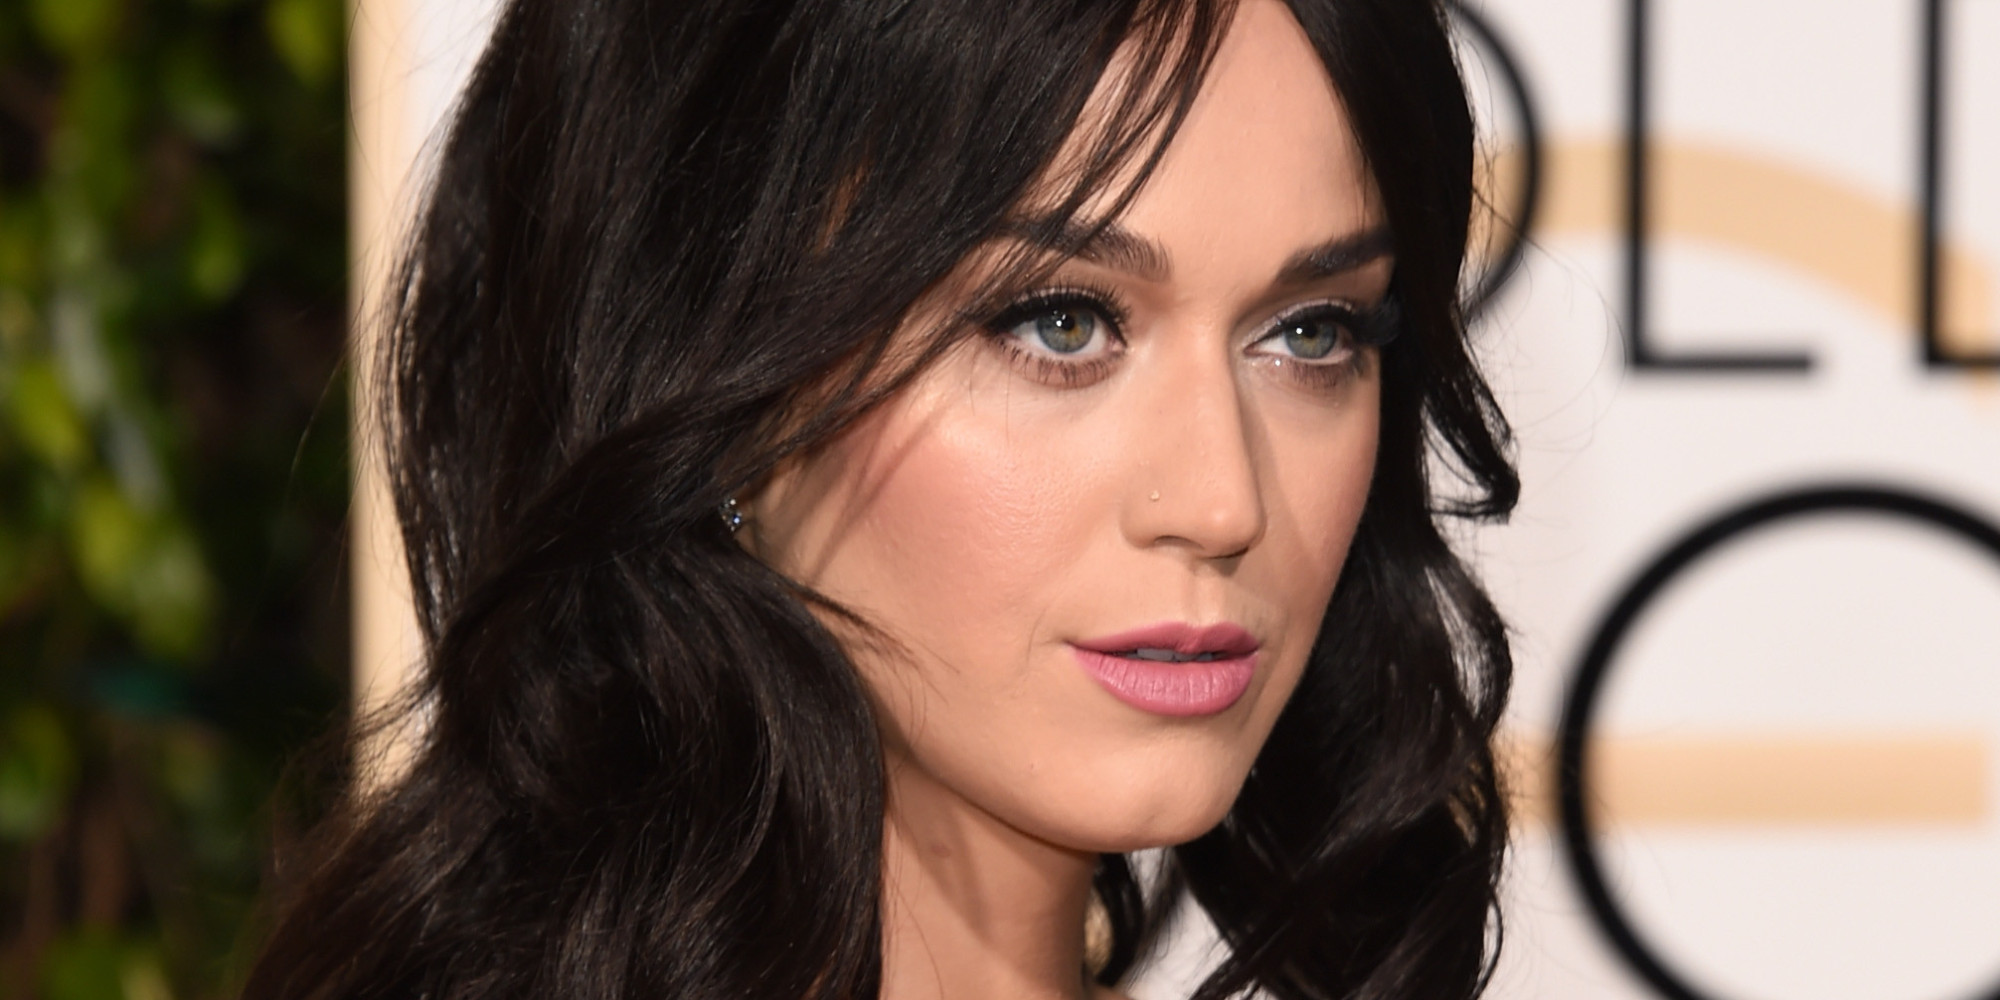 Katy Perry Speaks About Catfish Victim Who Thought They Were Engaged